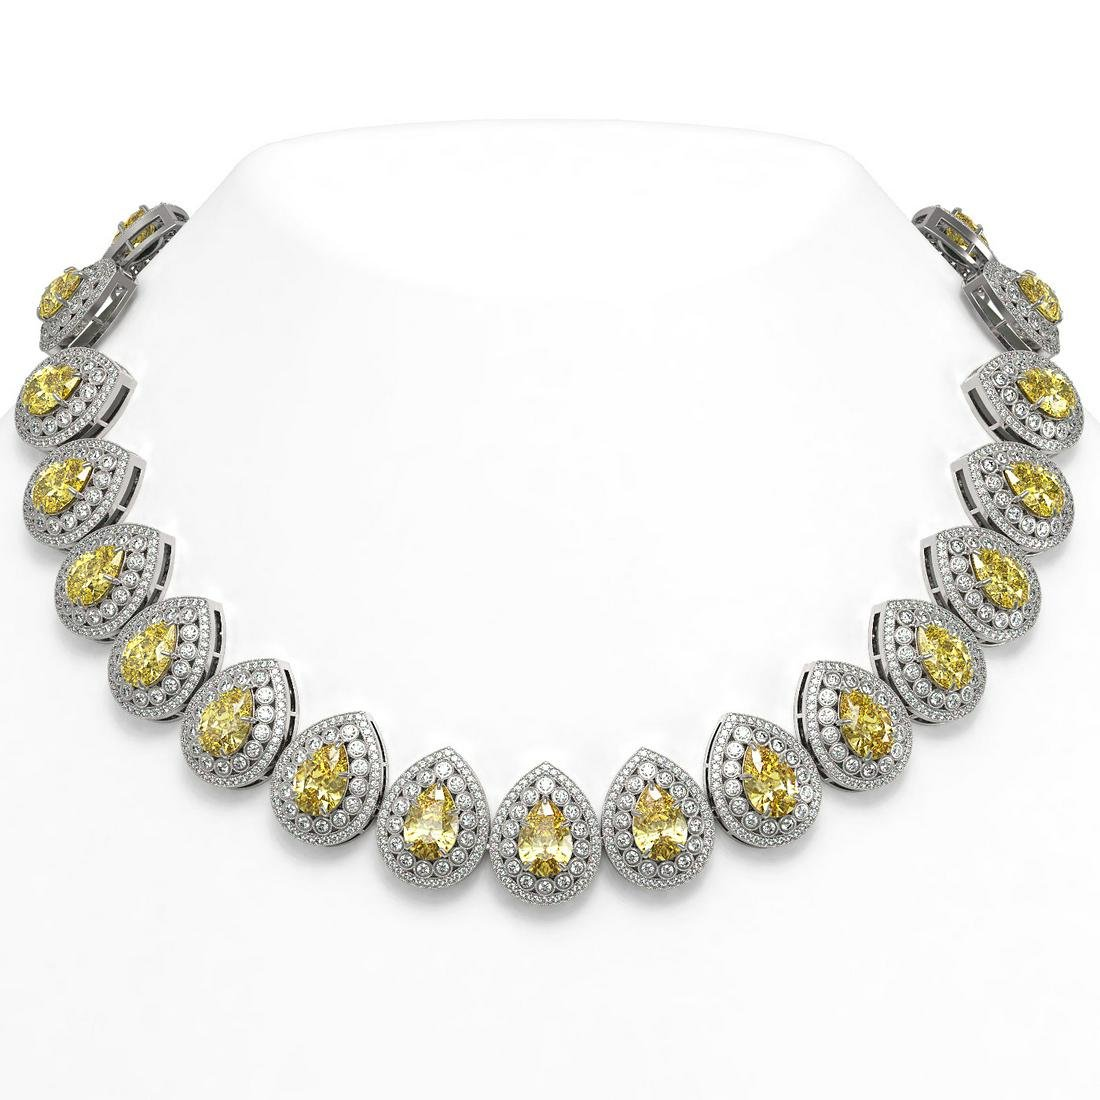 103.62 ctw Canary Citrine & Diamond Necklace 14K White